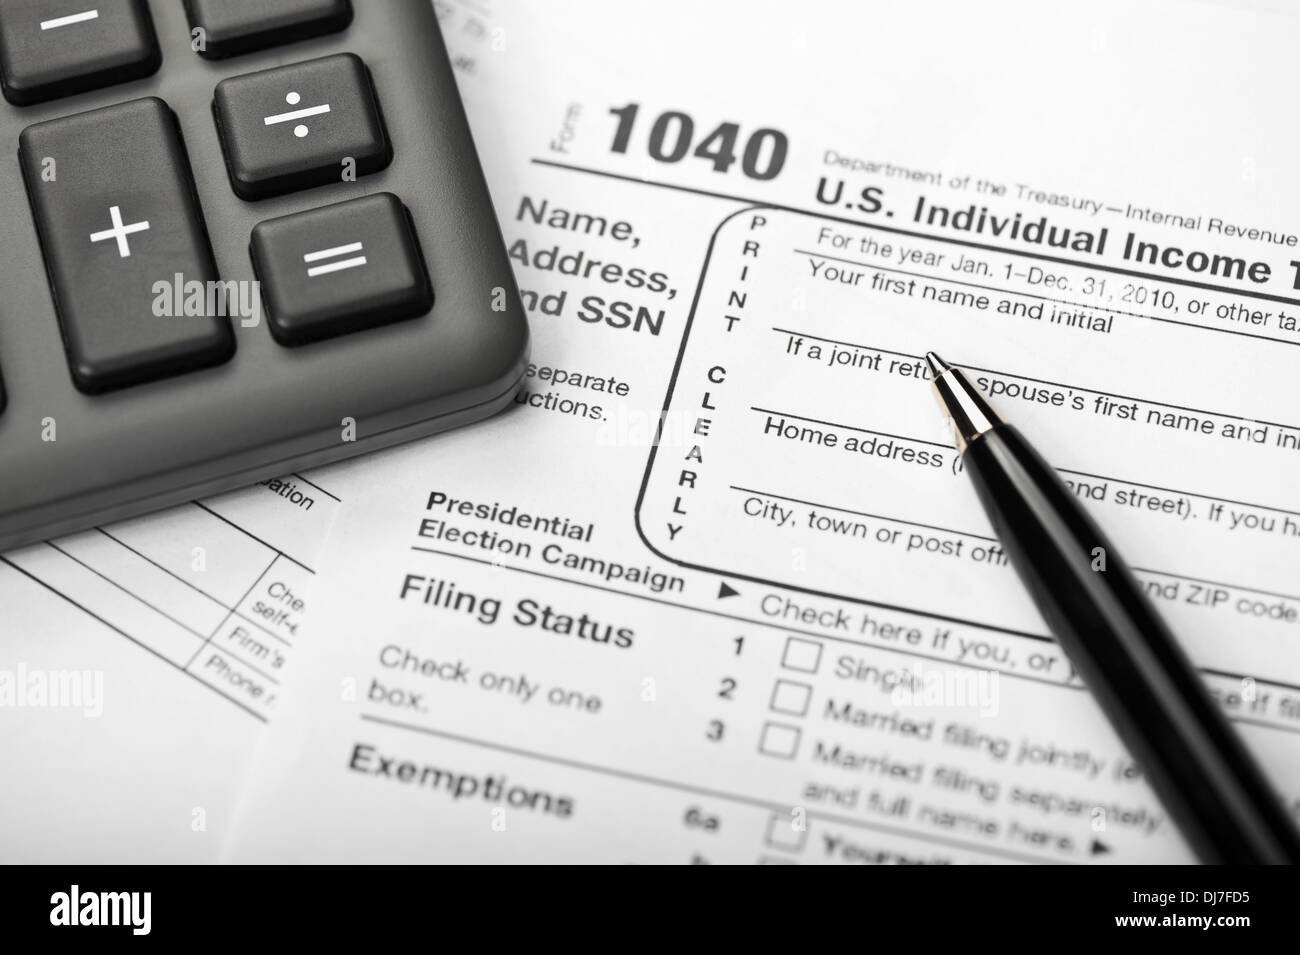 Filling 1040 tax form surrounded other stock photo (edit now.